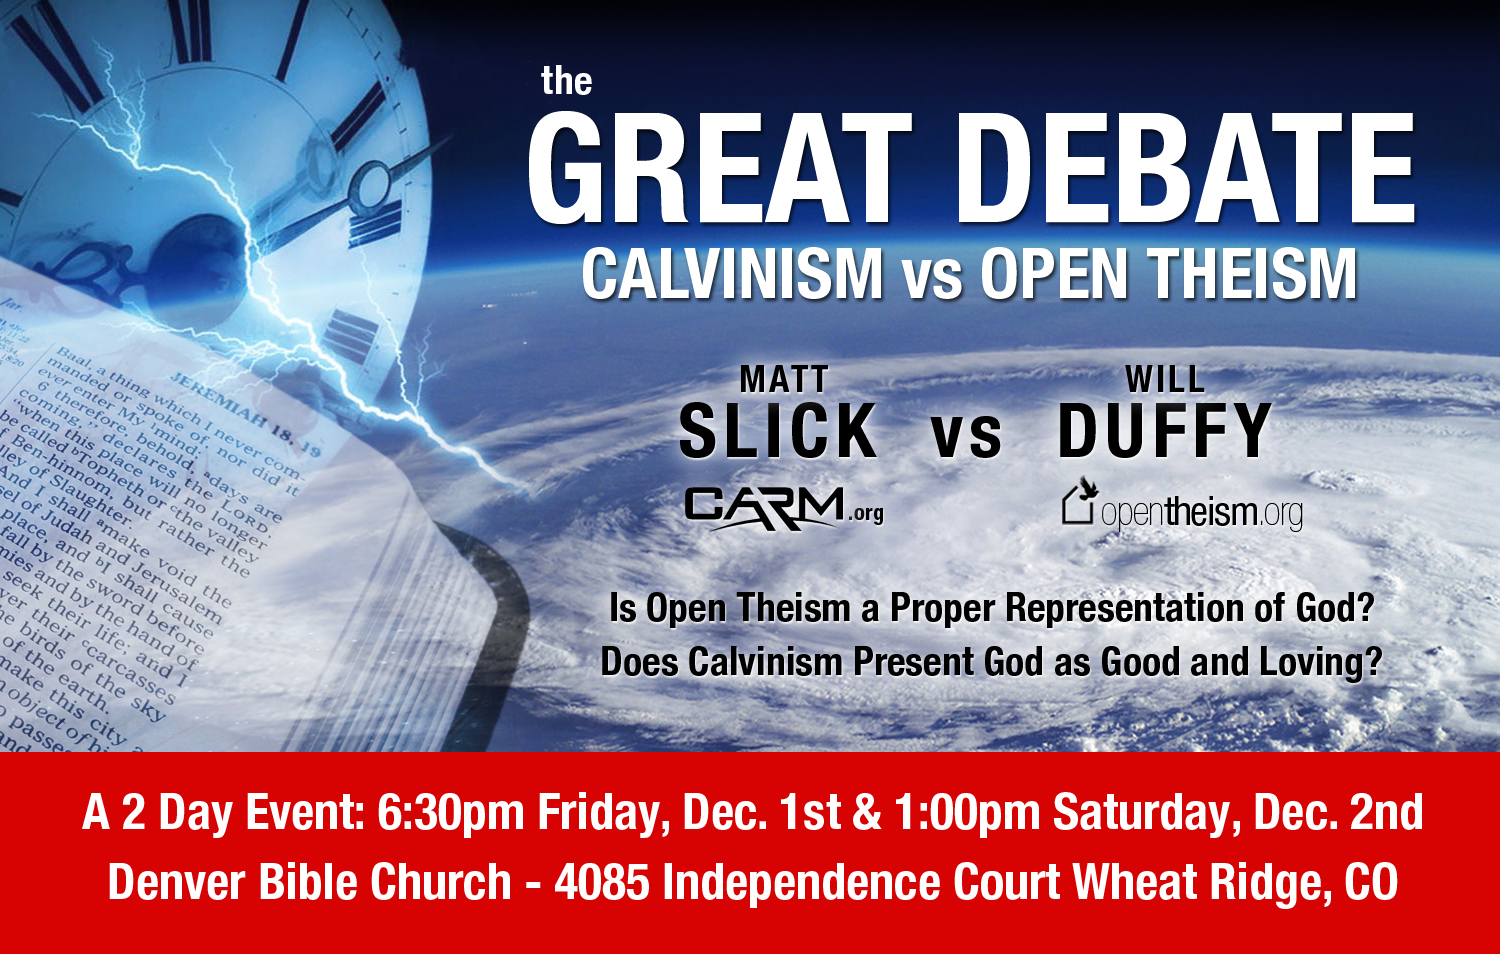 Open Theism vs. Calvinism, Will Duffy vs. Matt Slick, 2017 Debate